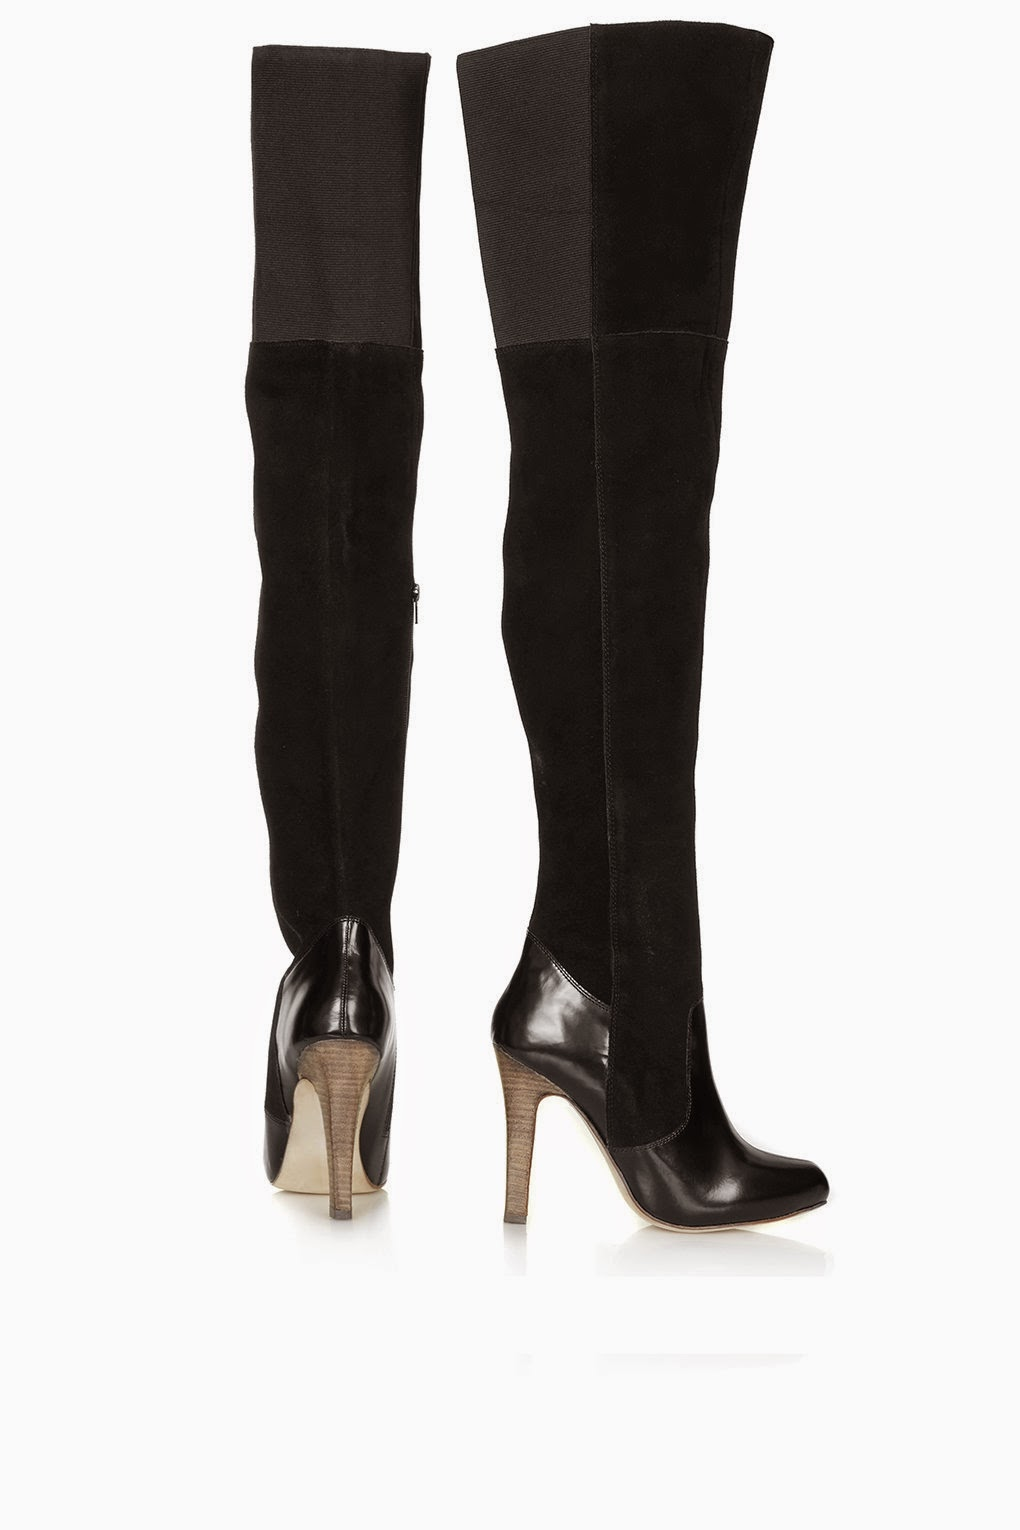 95d7fe80162a Need Want Now: Topshop thigh high boots...   KUIYA'S KLOSET